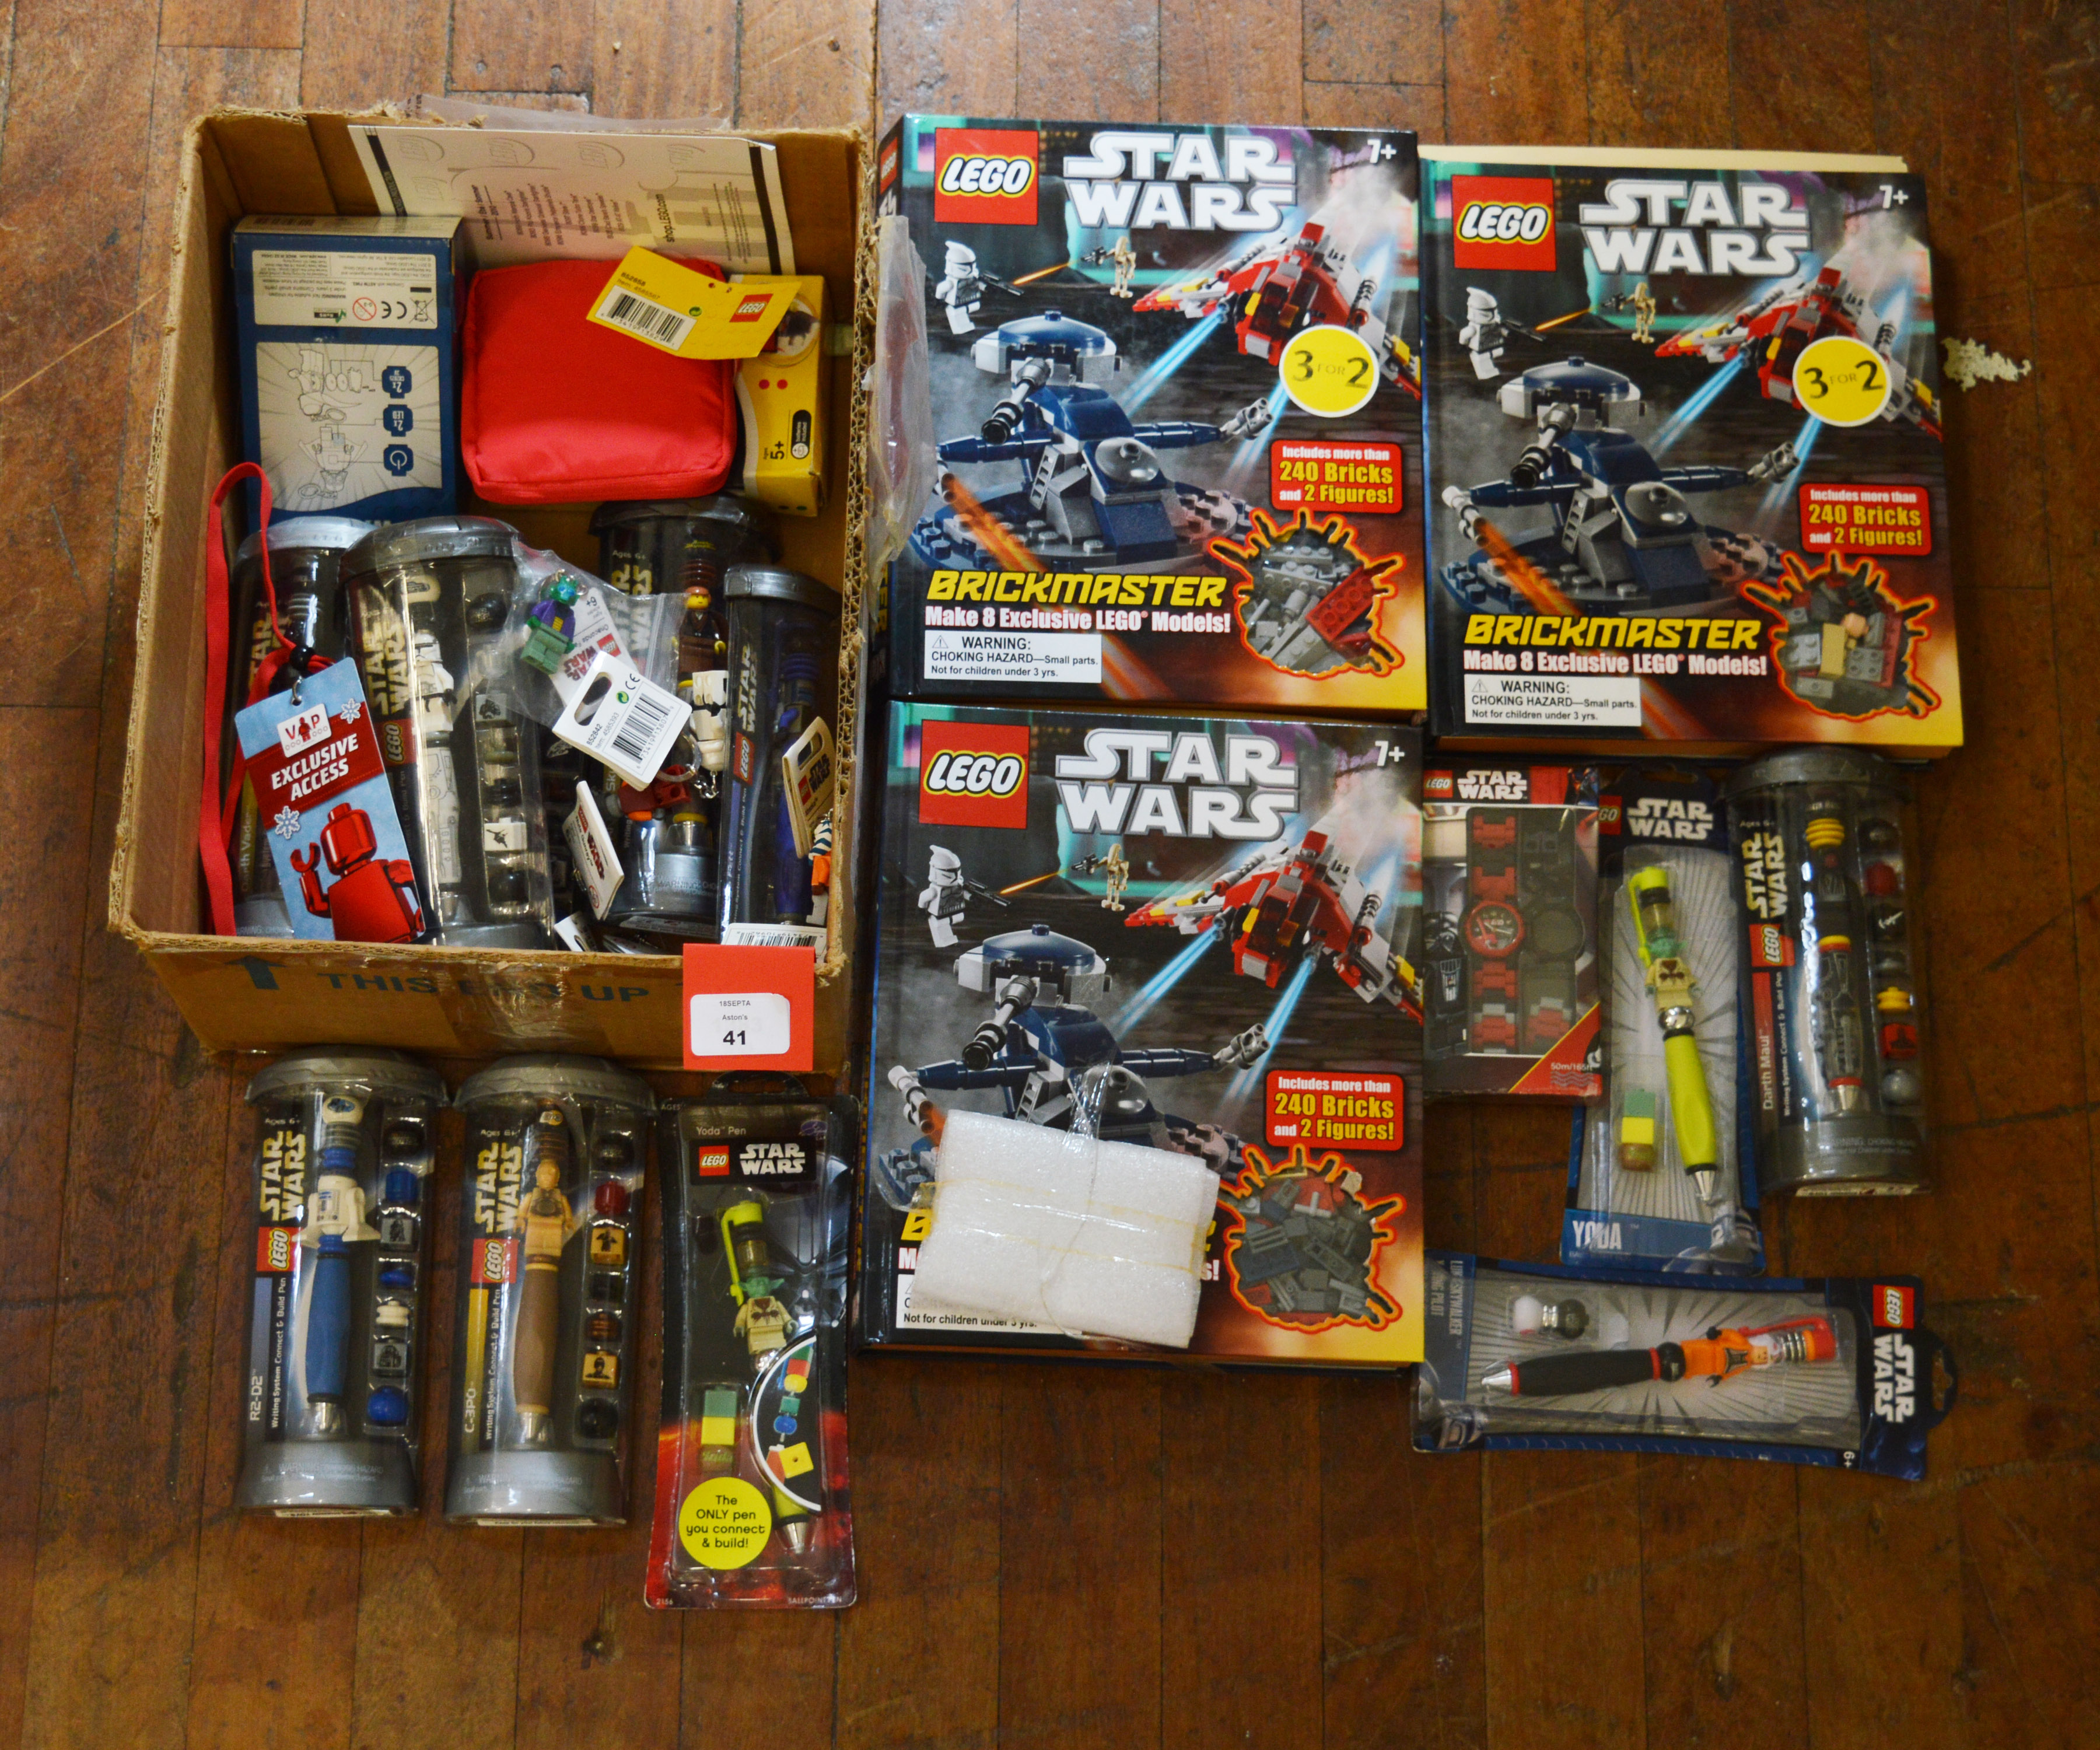 Lot 41 - Quantity of Lego Star Wars merchandise, including pens, keyrings, etc. Mostly VG.